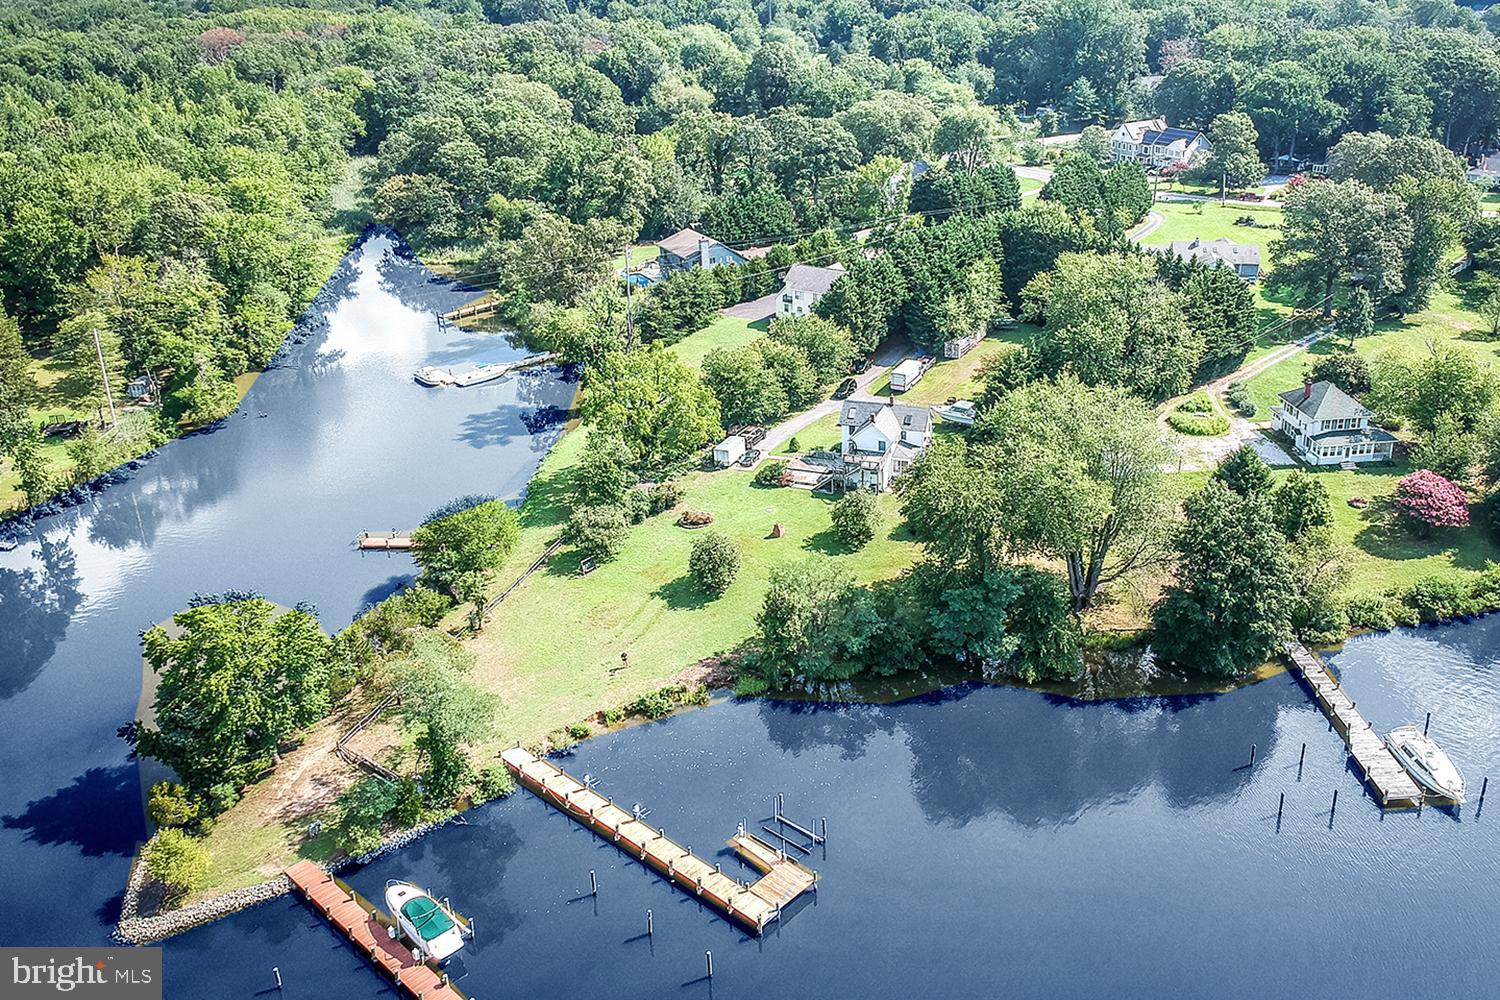 RARE WATERFRONT OPPORTUNITY ON CADLE CREEK spilling into the Bay via the Rhode River!  80 feet of prime water frontage with L-shaped pier and electric lift.  Dangle your legs off the pier while fishing!  Bask in spectacular sunsets!  Original Mayo creekside home circa 1892, maintained and preserved in a pride of ownership Chesapeake tradition.  Verdant, treed 1.46 acres with level lawns.  Multi-vehicle driveway and extra parking for recreational vehicles/boat trailers or possible home business.  Enjoy outdoor living with welcoming screened porch spanning front of home, water view dining deck and yard with brick BBQ grill ready for picnics and play!  Living Room opening to deck & waterfront.  Formal chandeliered Dining Room.  Updated Country Kitchen with cooktop island dining bar & stainless appliances.  Home Office or homeschooling room.  Vaulted skylit Master Suite with decorative tile Bath.  Rooftop water view decking for morning coffee or evening stargazing!  Decorate this storied Bay home to your taste and settle in for SERENE YEAR-ROUND LIVING or a SUMMERTIME FAMILY RETREAT!